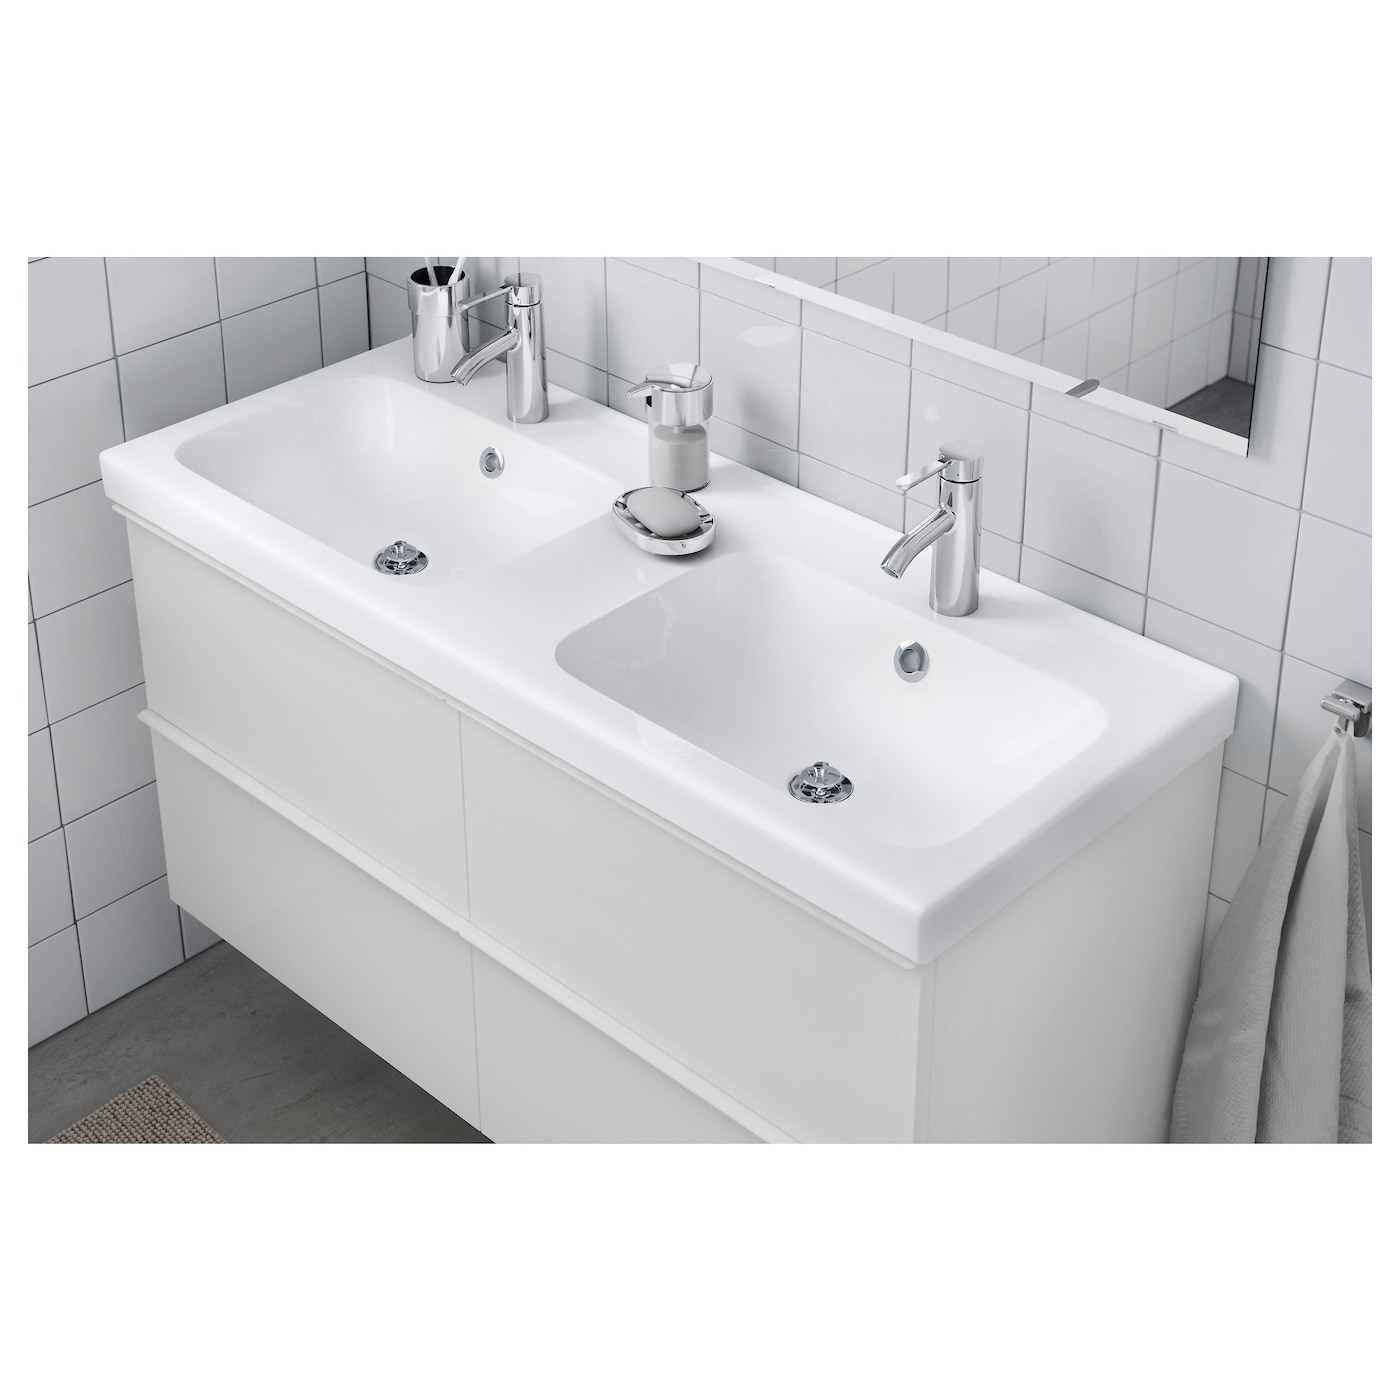 double bowl bathroom sinks odensvik wash basin 123 x 49 x 6 cm ikea 18175